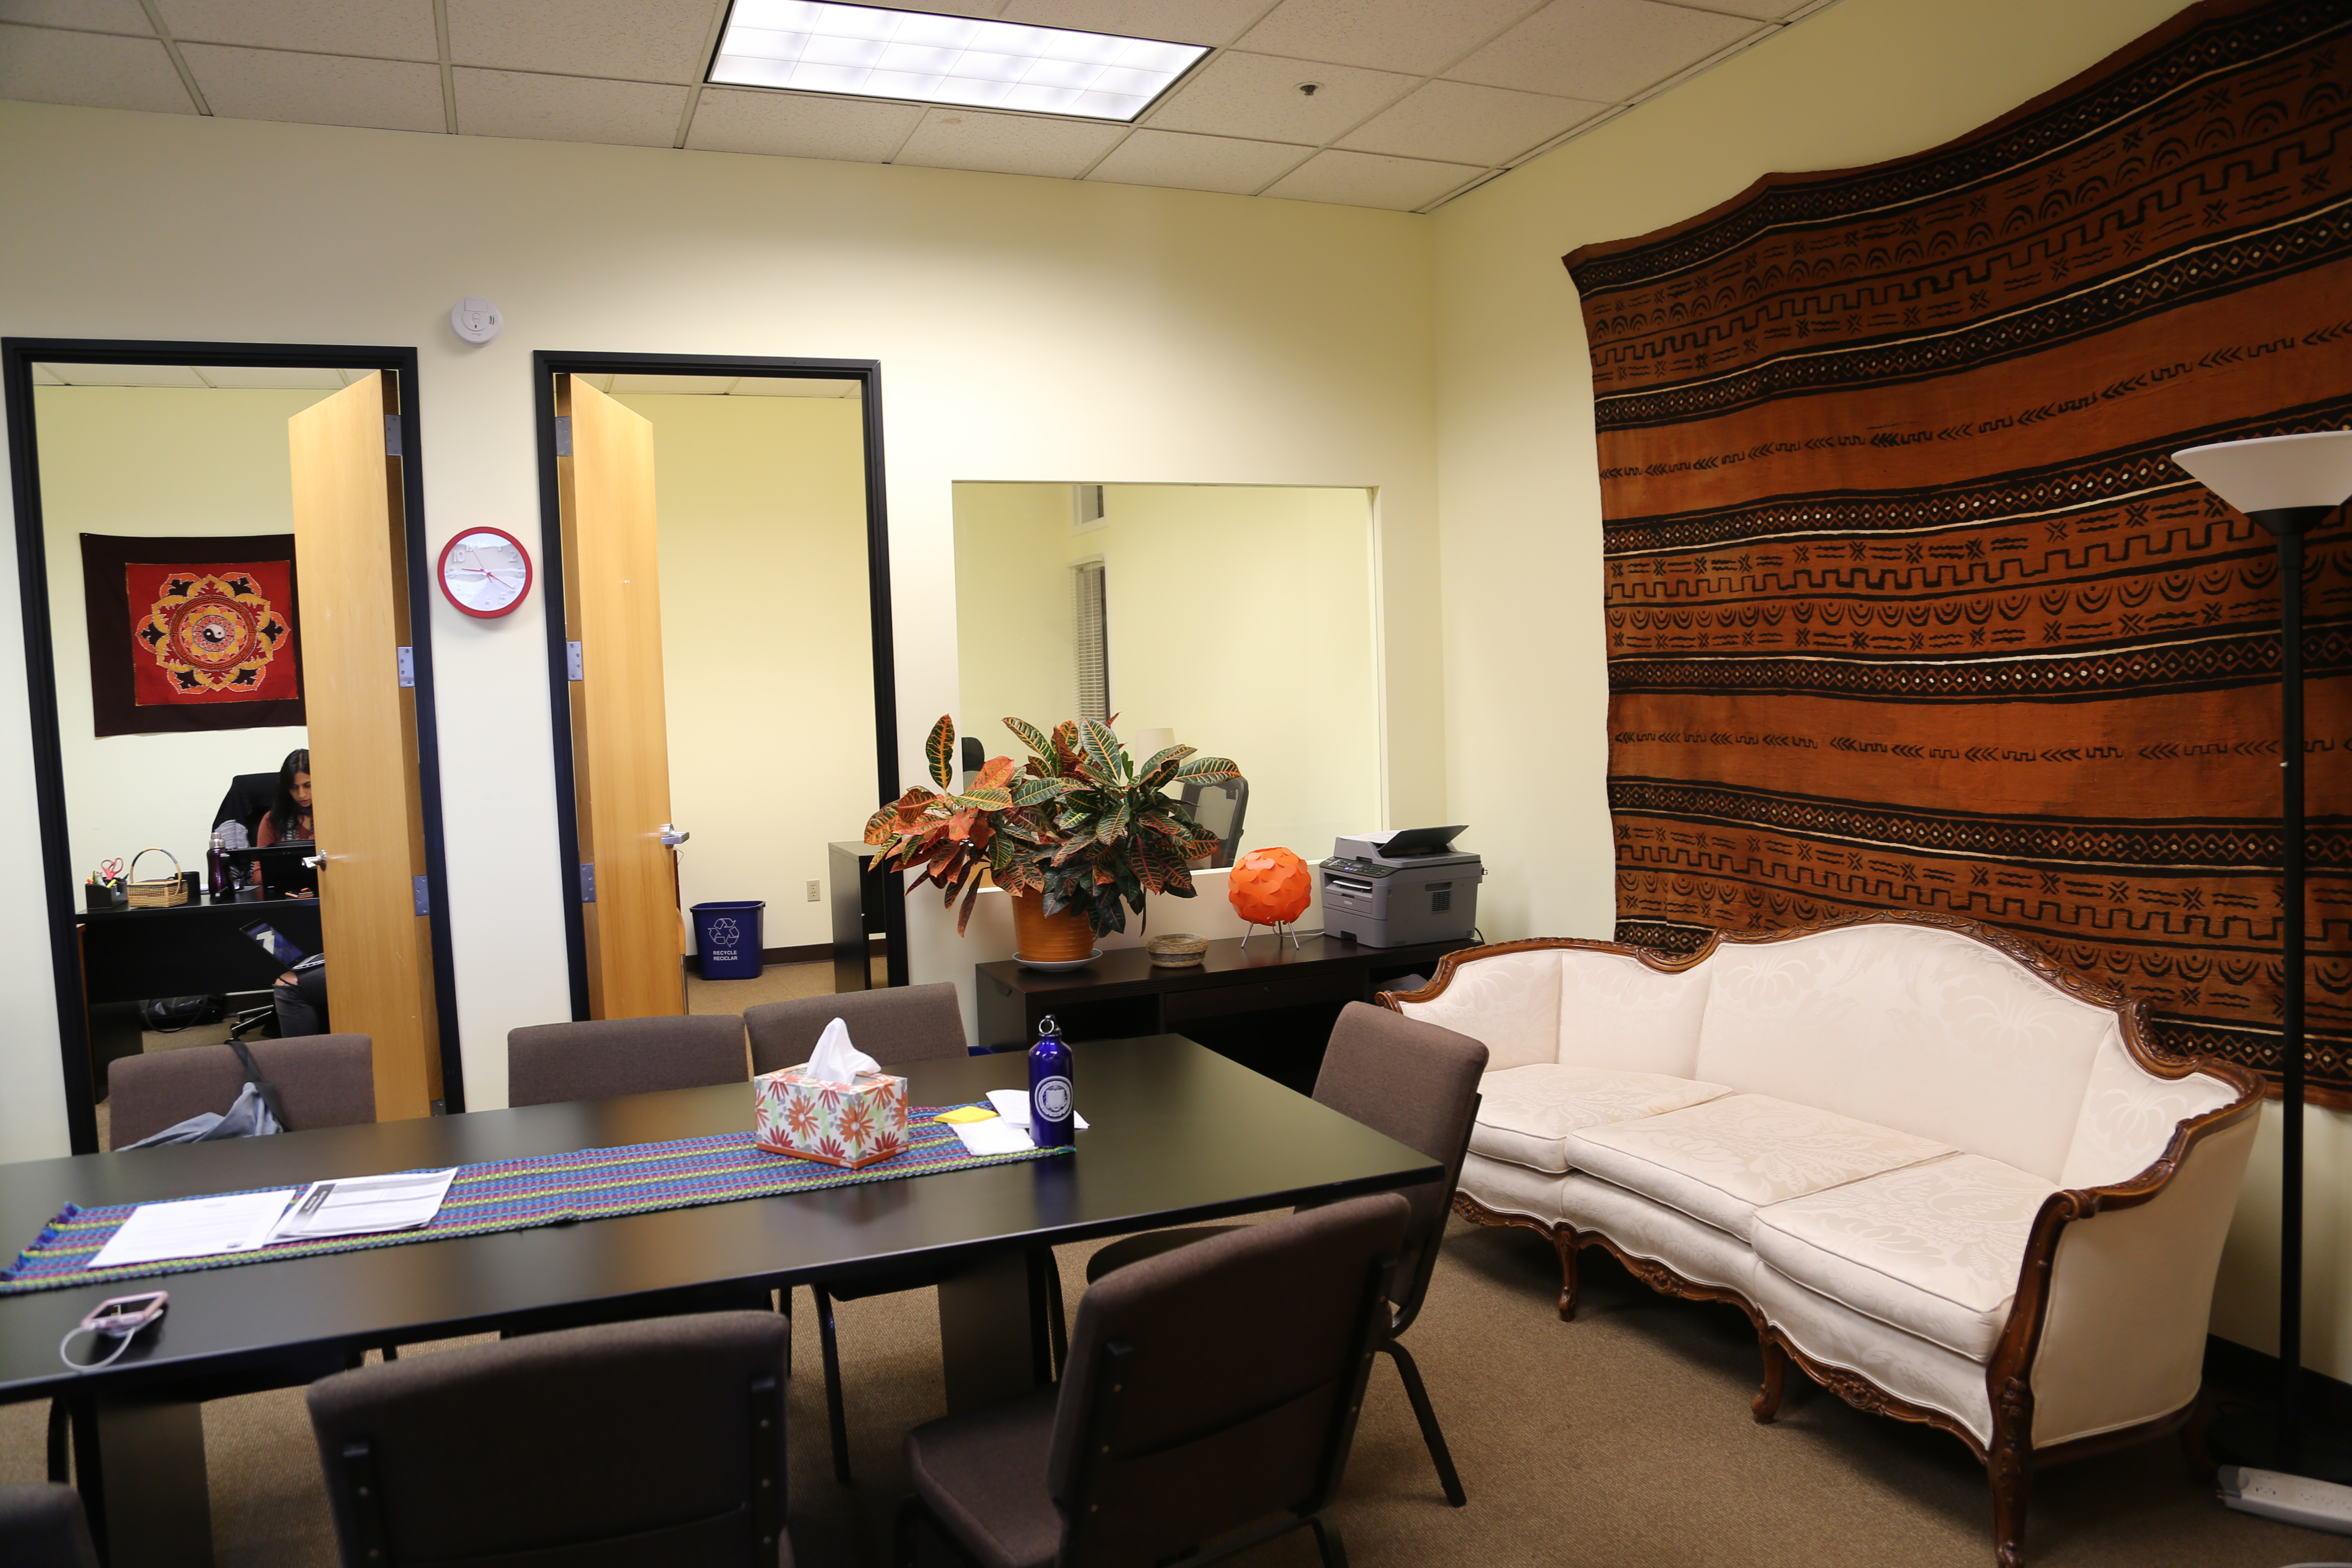 Group Therapy Room